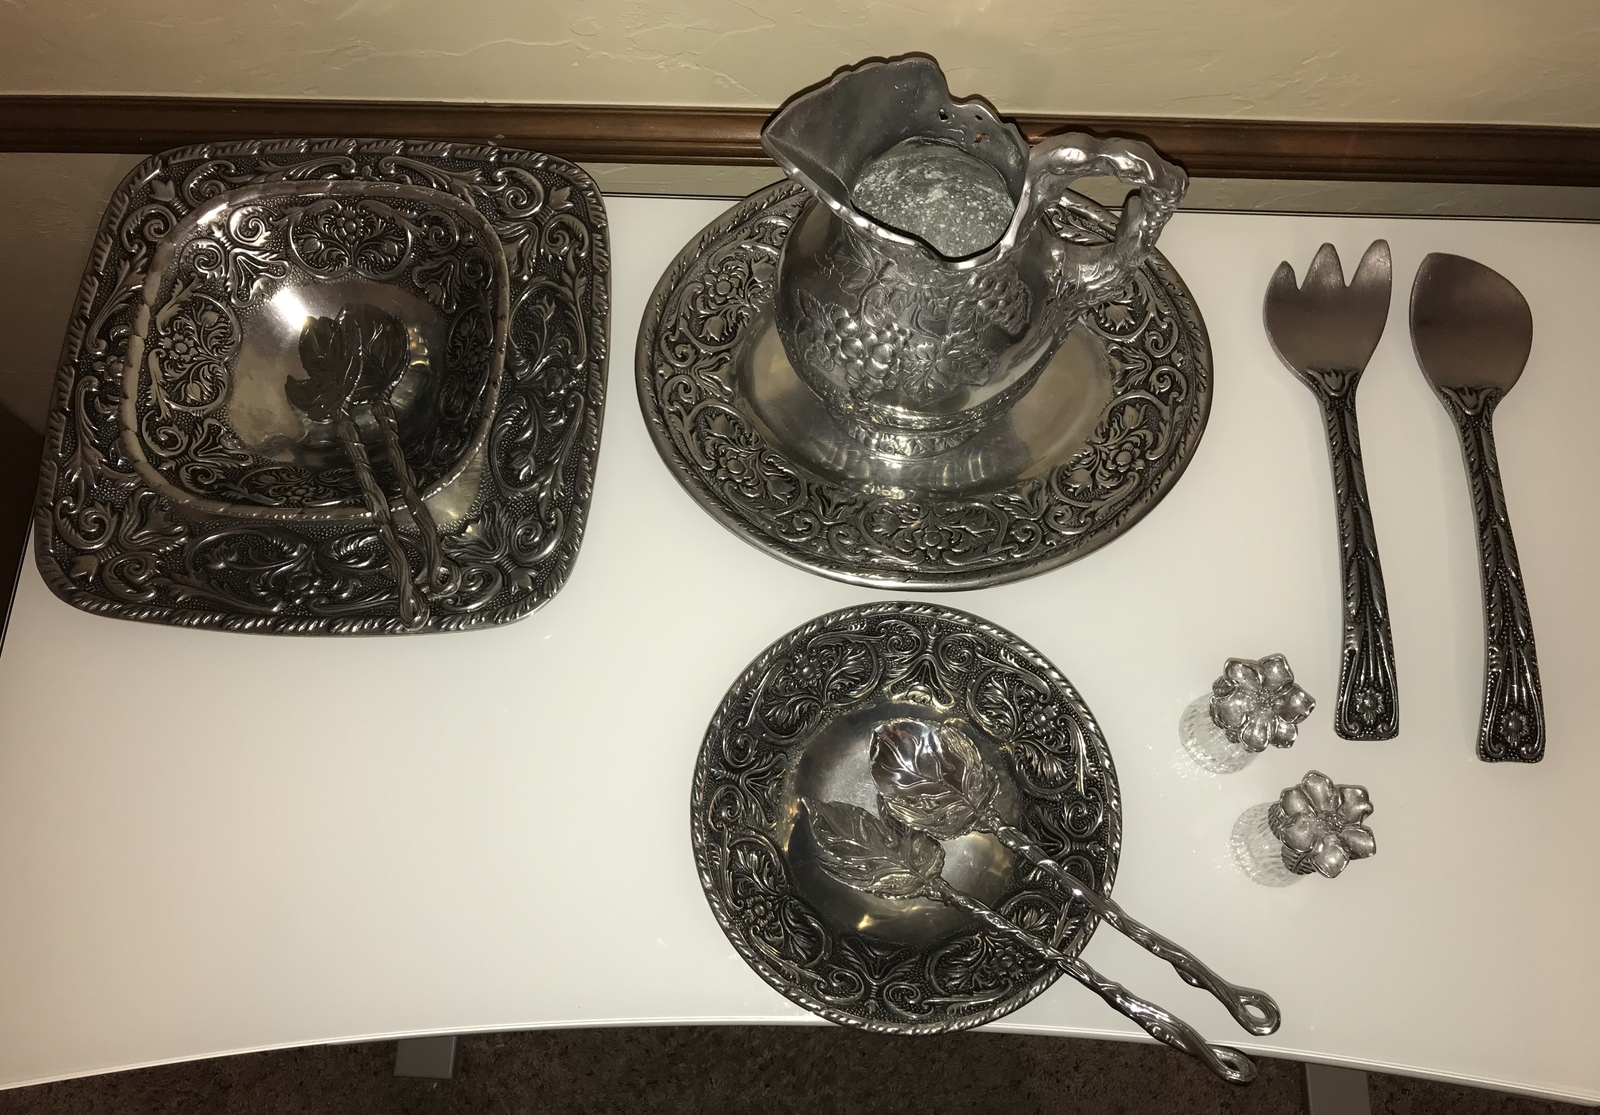 Wilton Armetale William and Mary Pewter set - Amazing! - $425.00